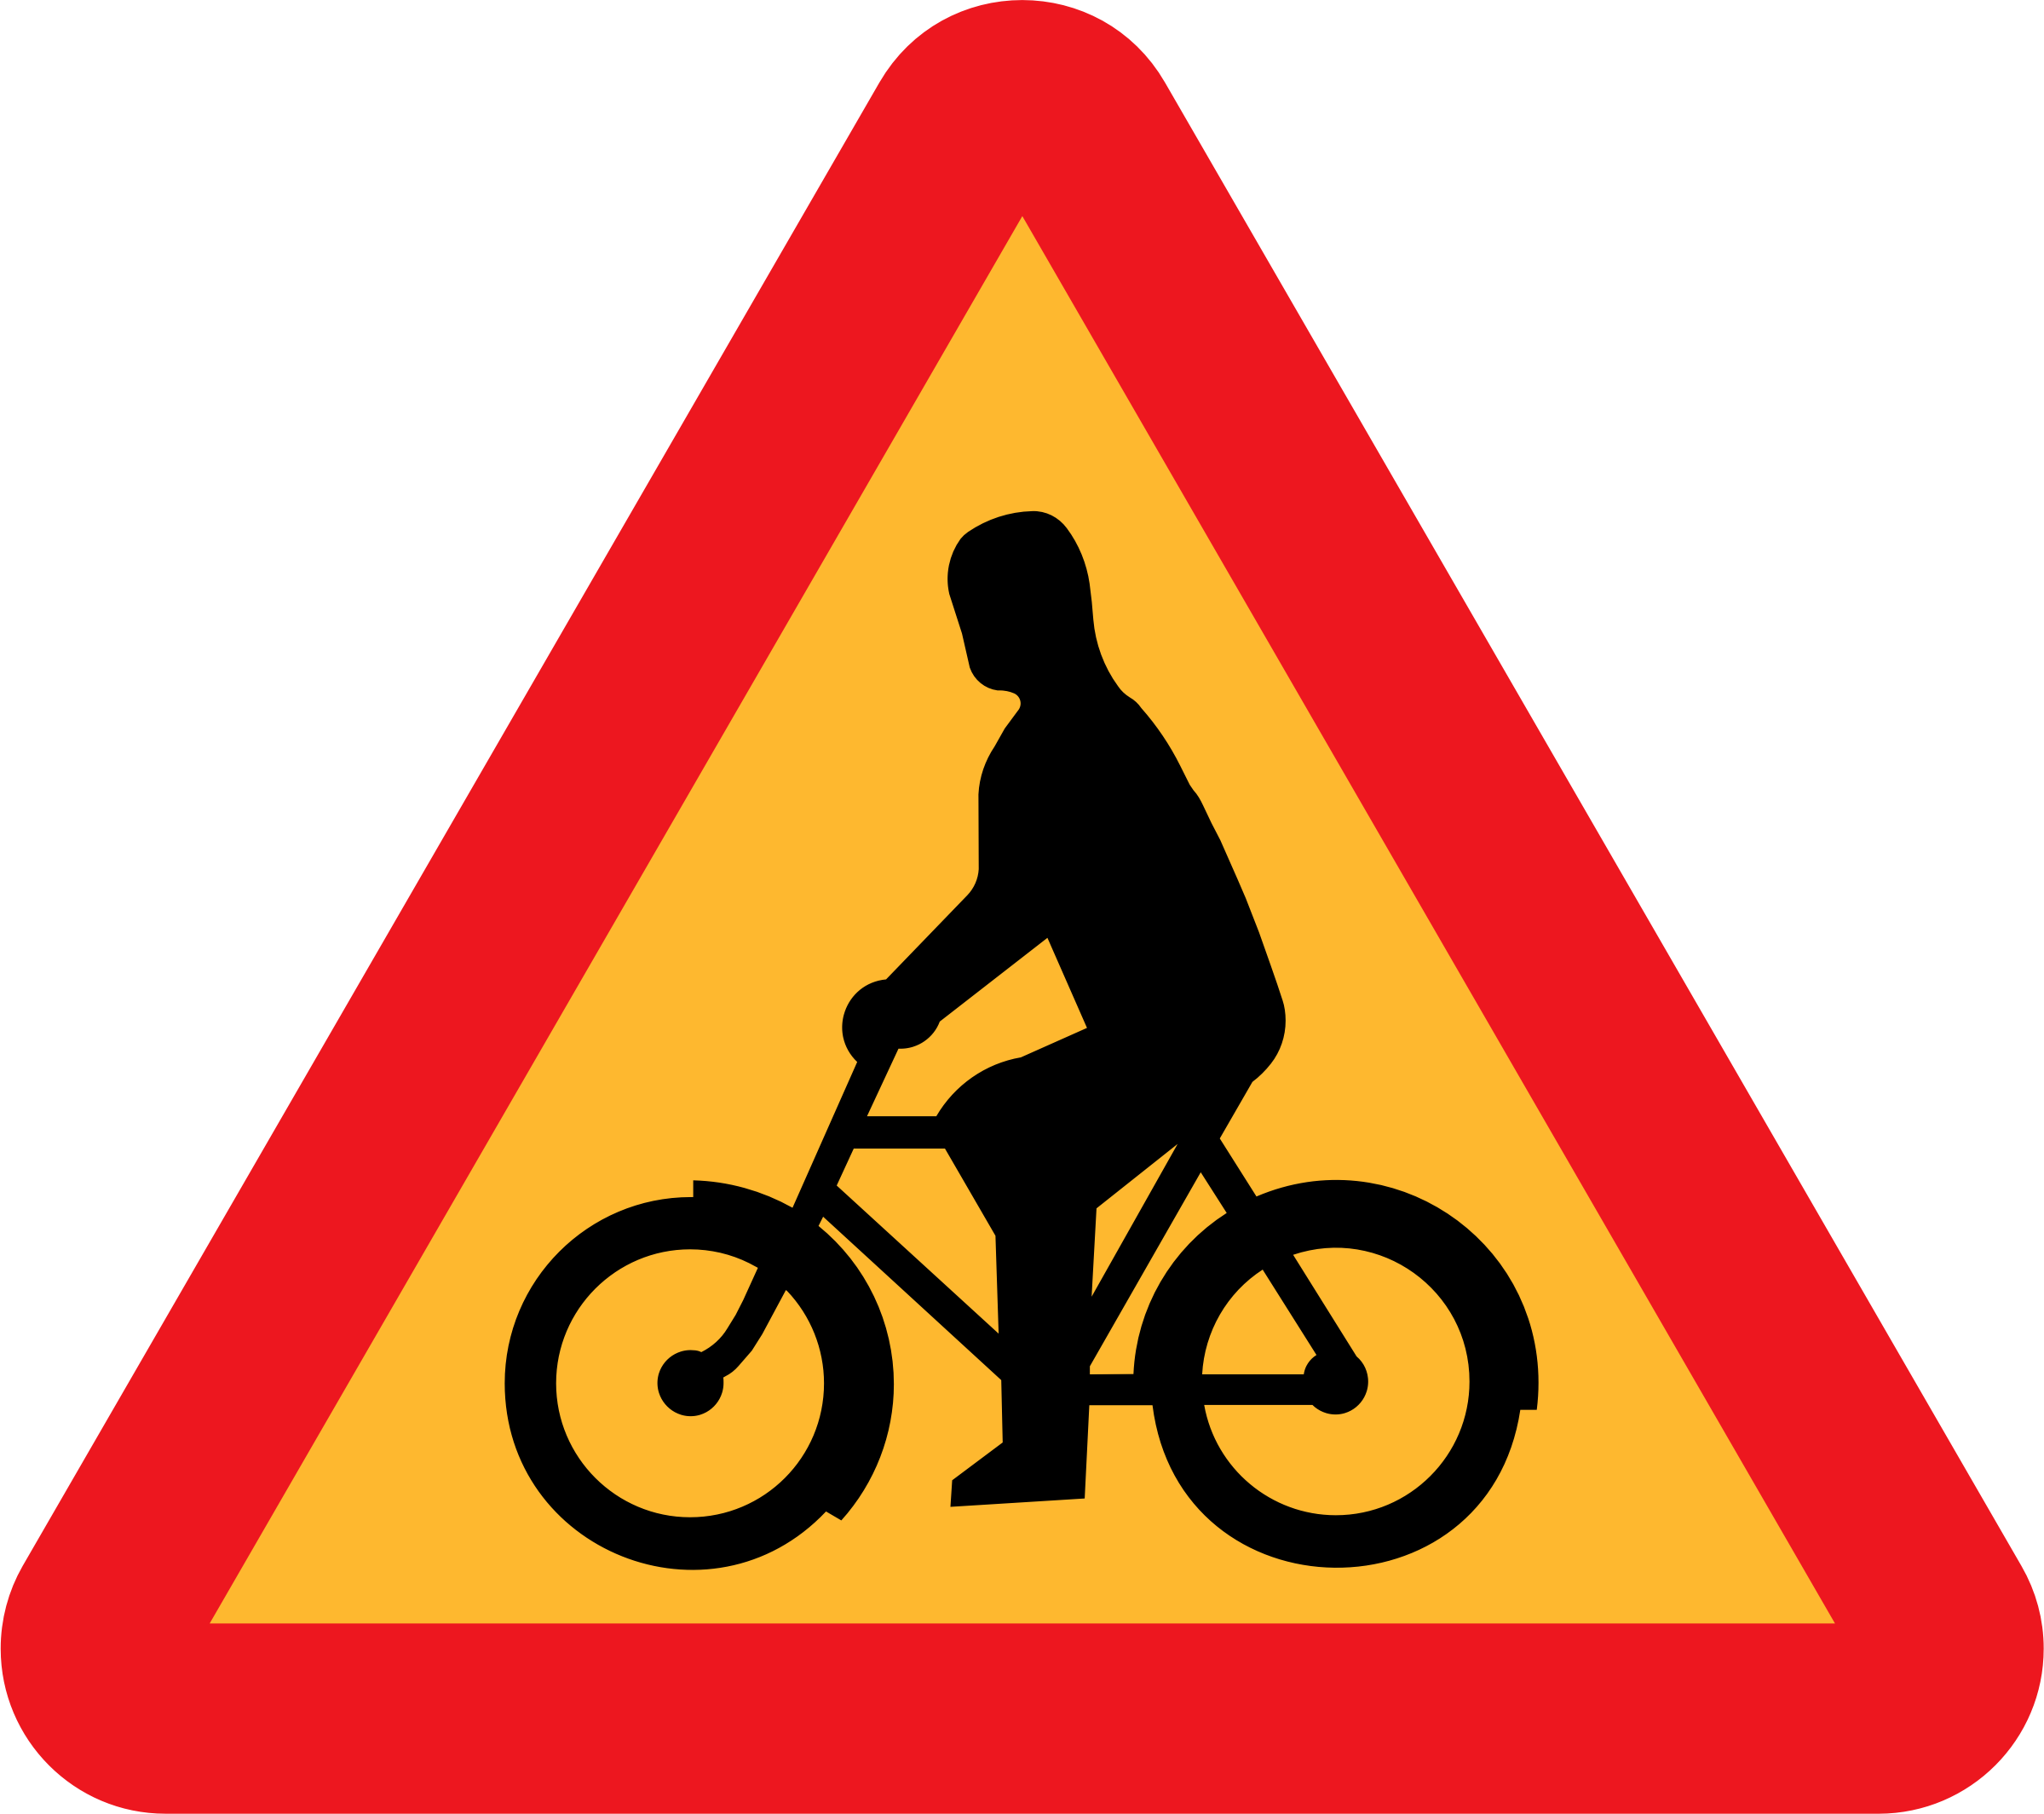 Bicycles Roadsign by ryanlerch